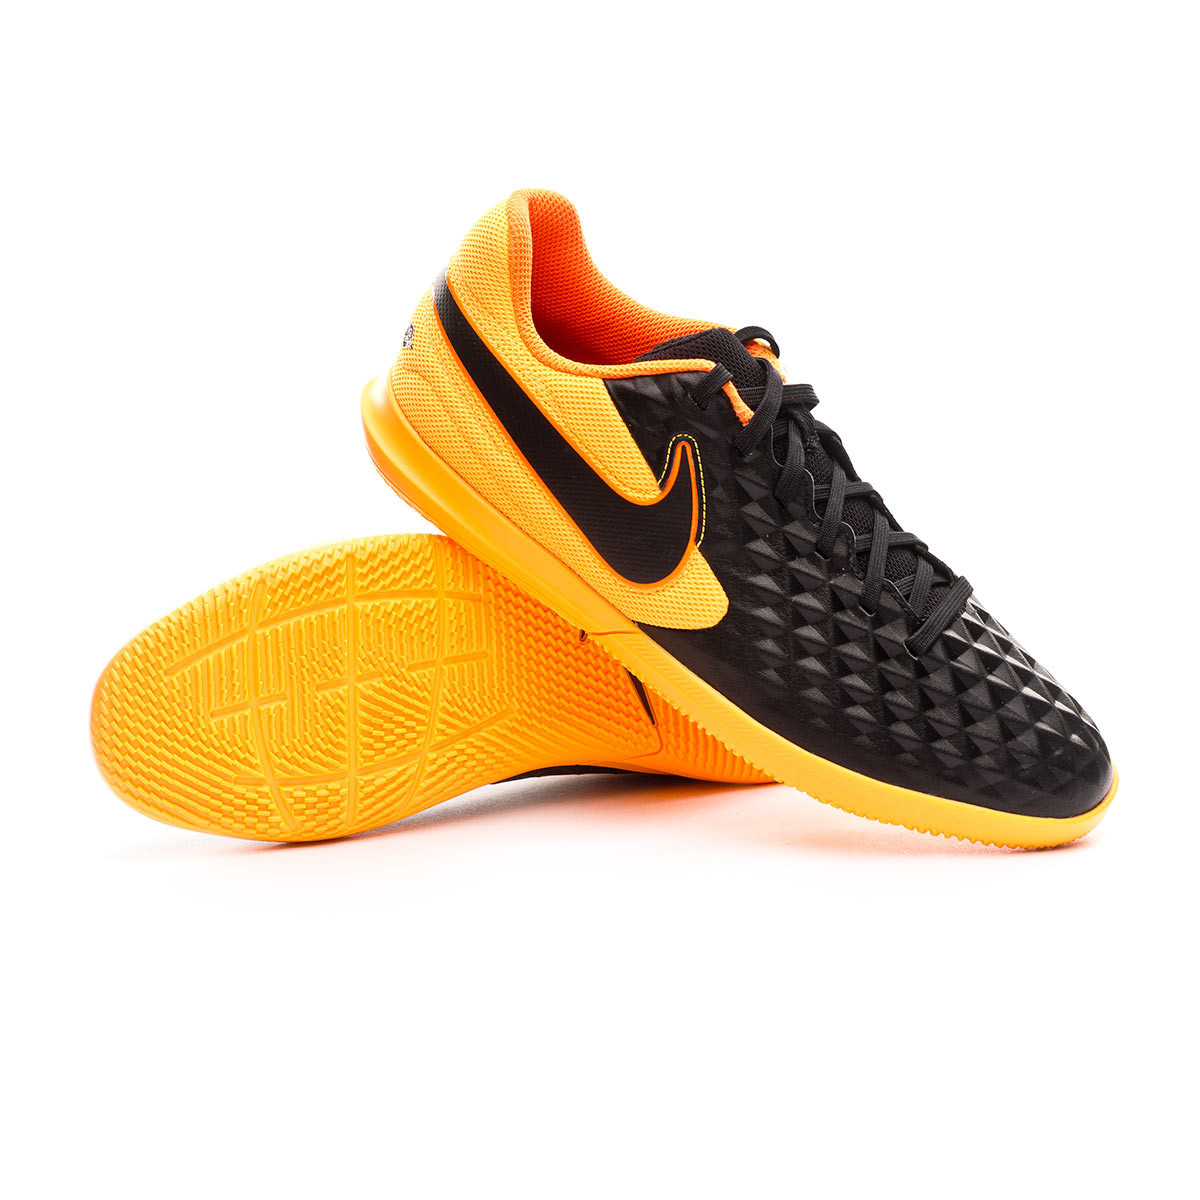 buque de vapor Pino consola  Futsal Boot Nike Tiempo Legend VIII Club IC Black-Laser orange-Total orange  - Football store Fútbol Emotion